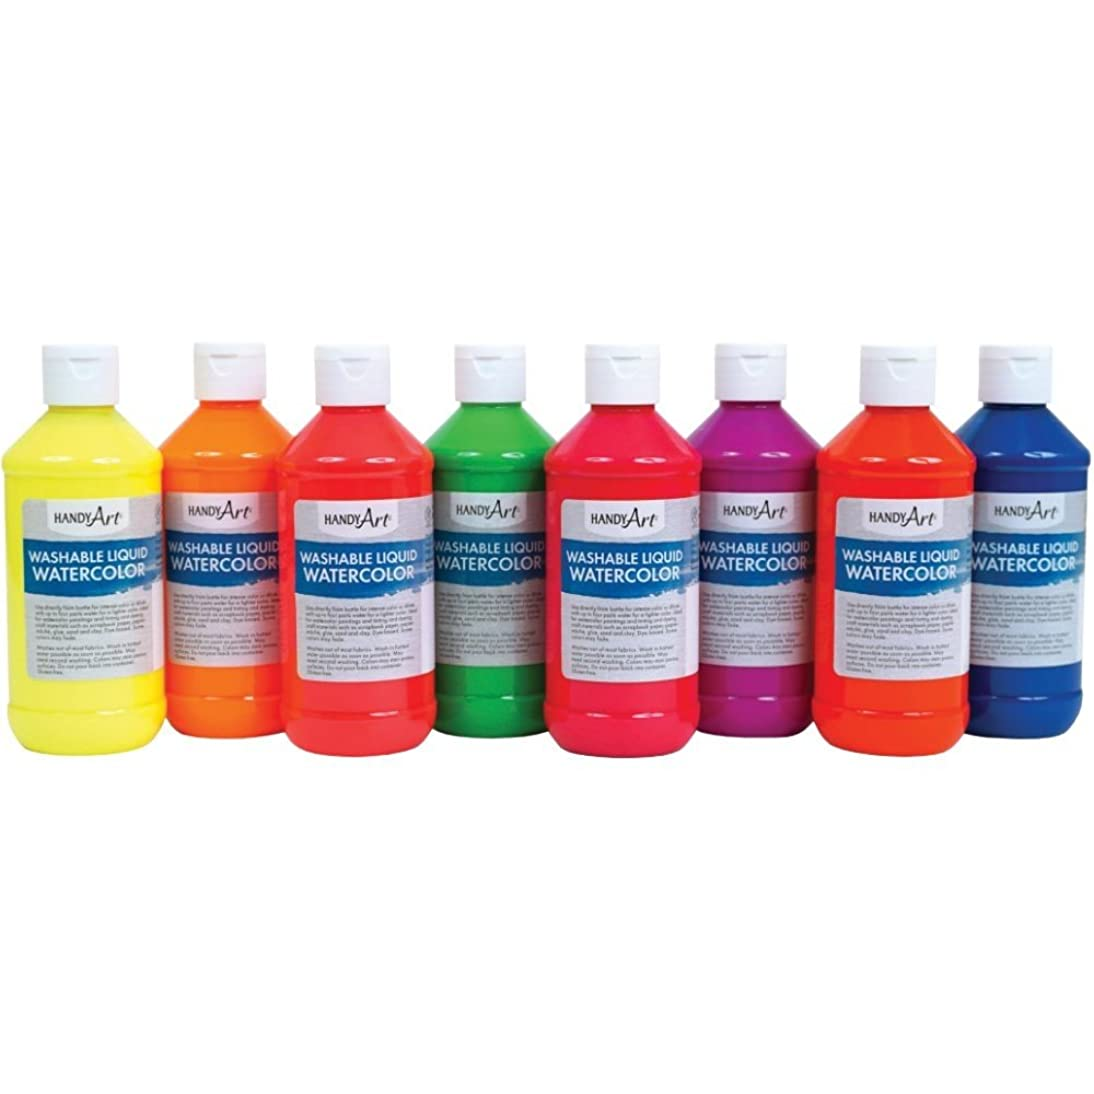 Constructive Playthings HAT-278 Fluorescent Liquid Watercolor Paint Set of 8 oz.Bottles, Grade: 1 to 5, Age: 9.4